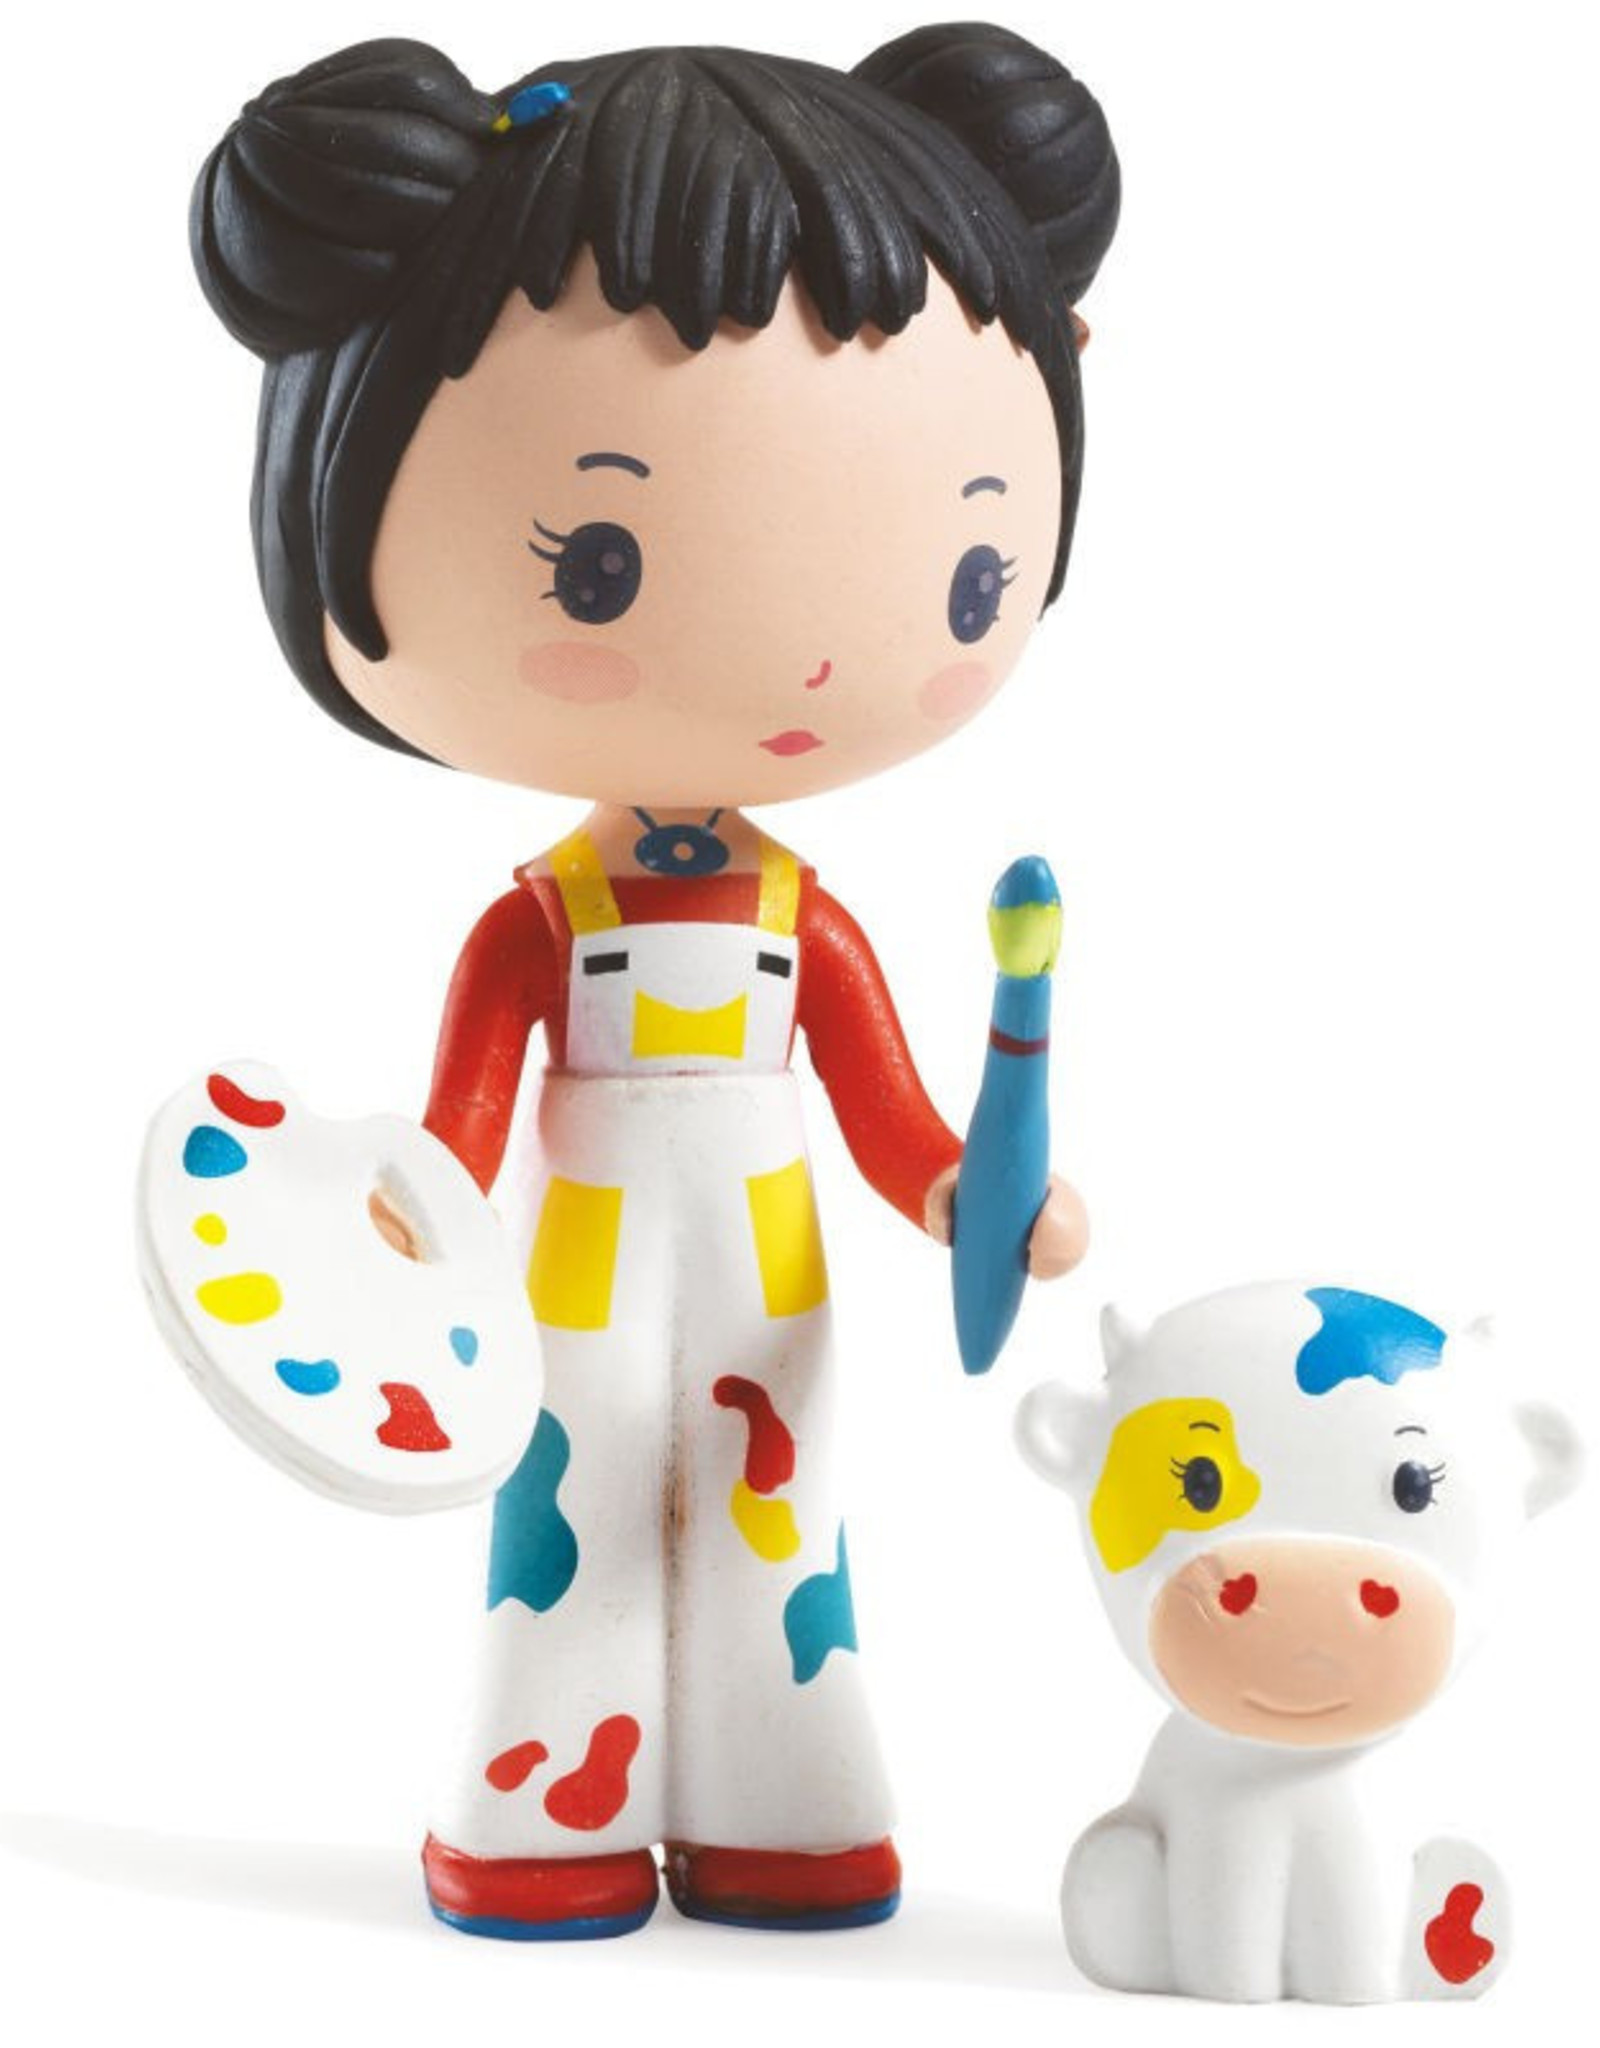 Djeco Barbouille and Gribs - Tinyly figurines